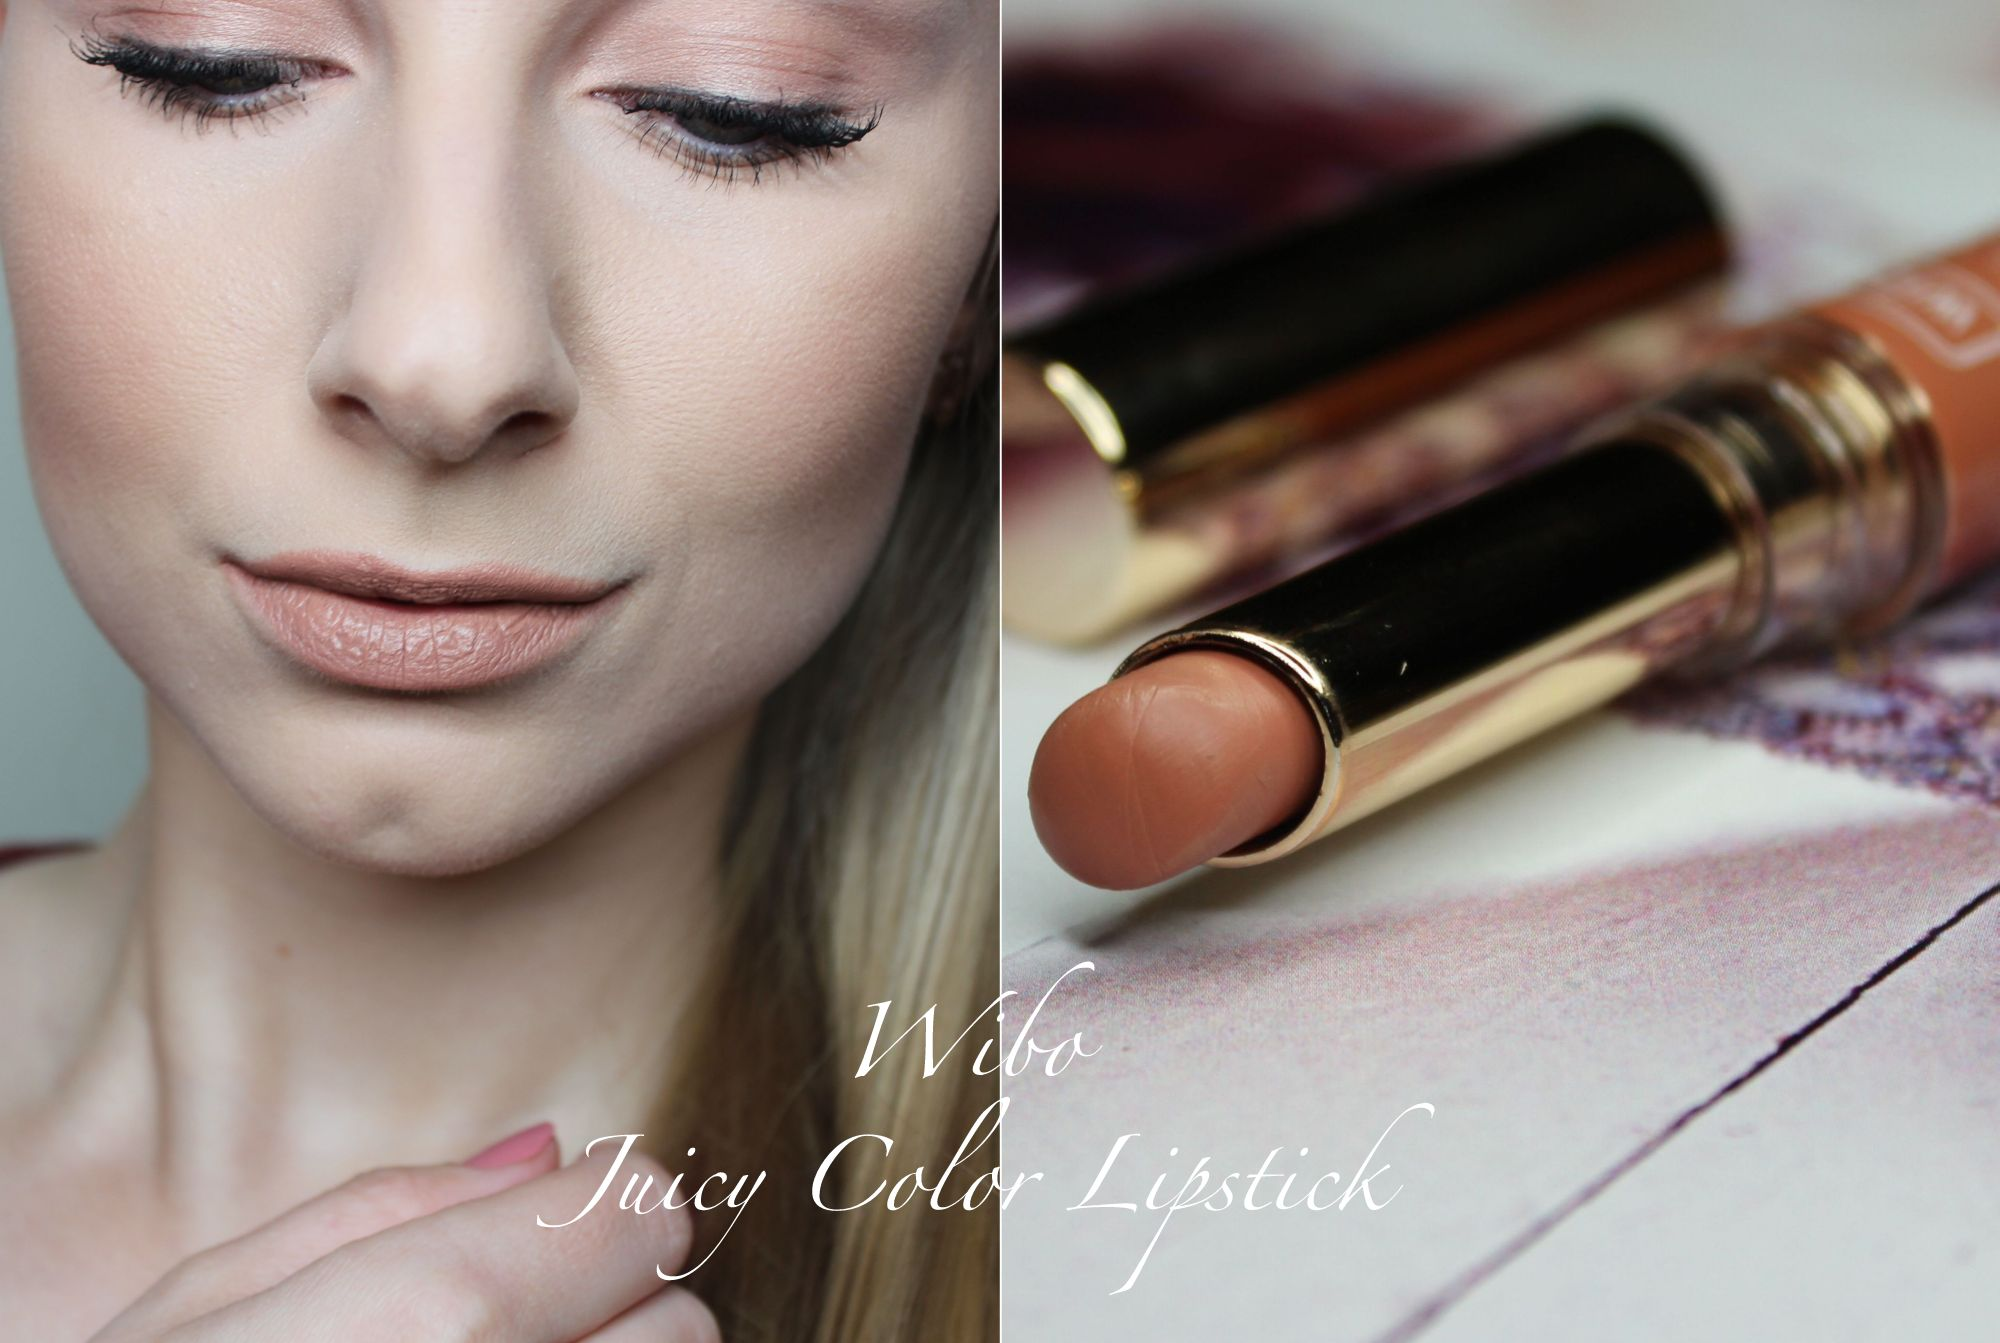 TOP 16 - Wibo Juicy Color Lipstick in 6 2